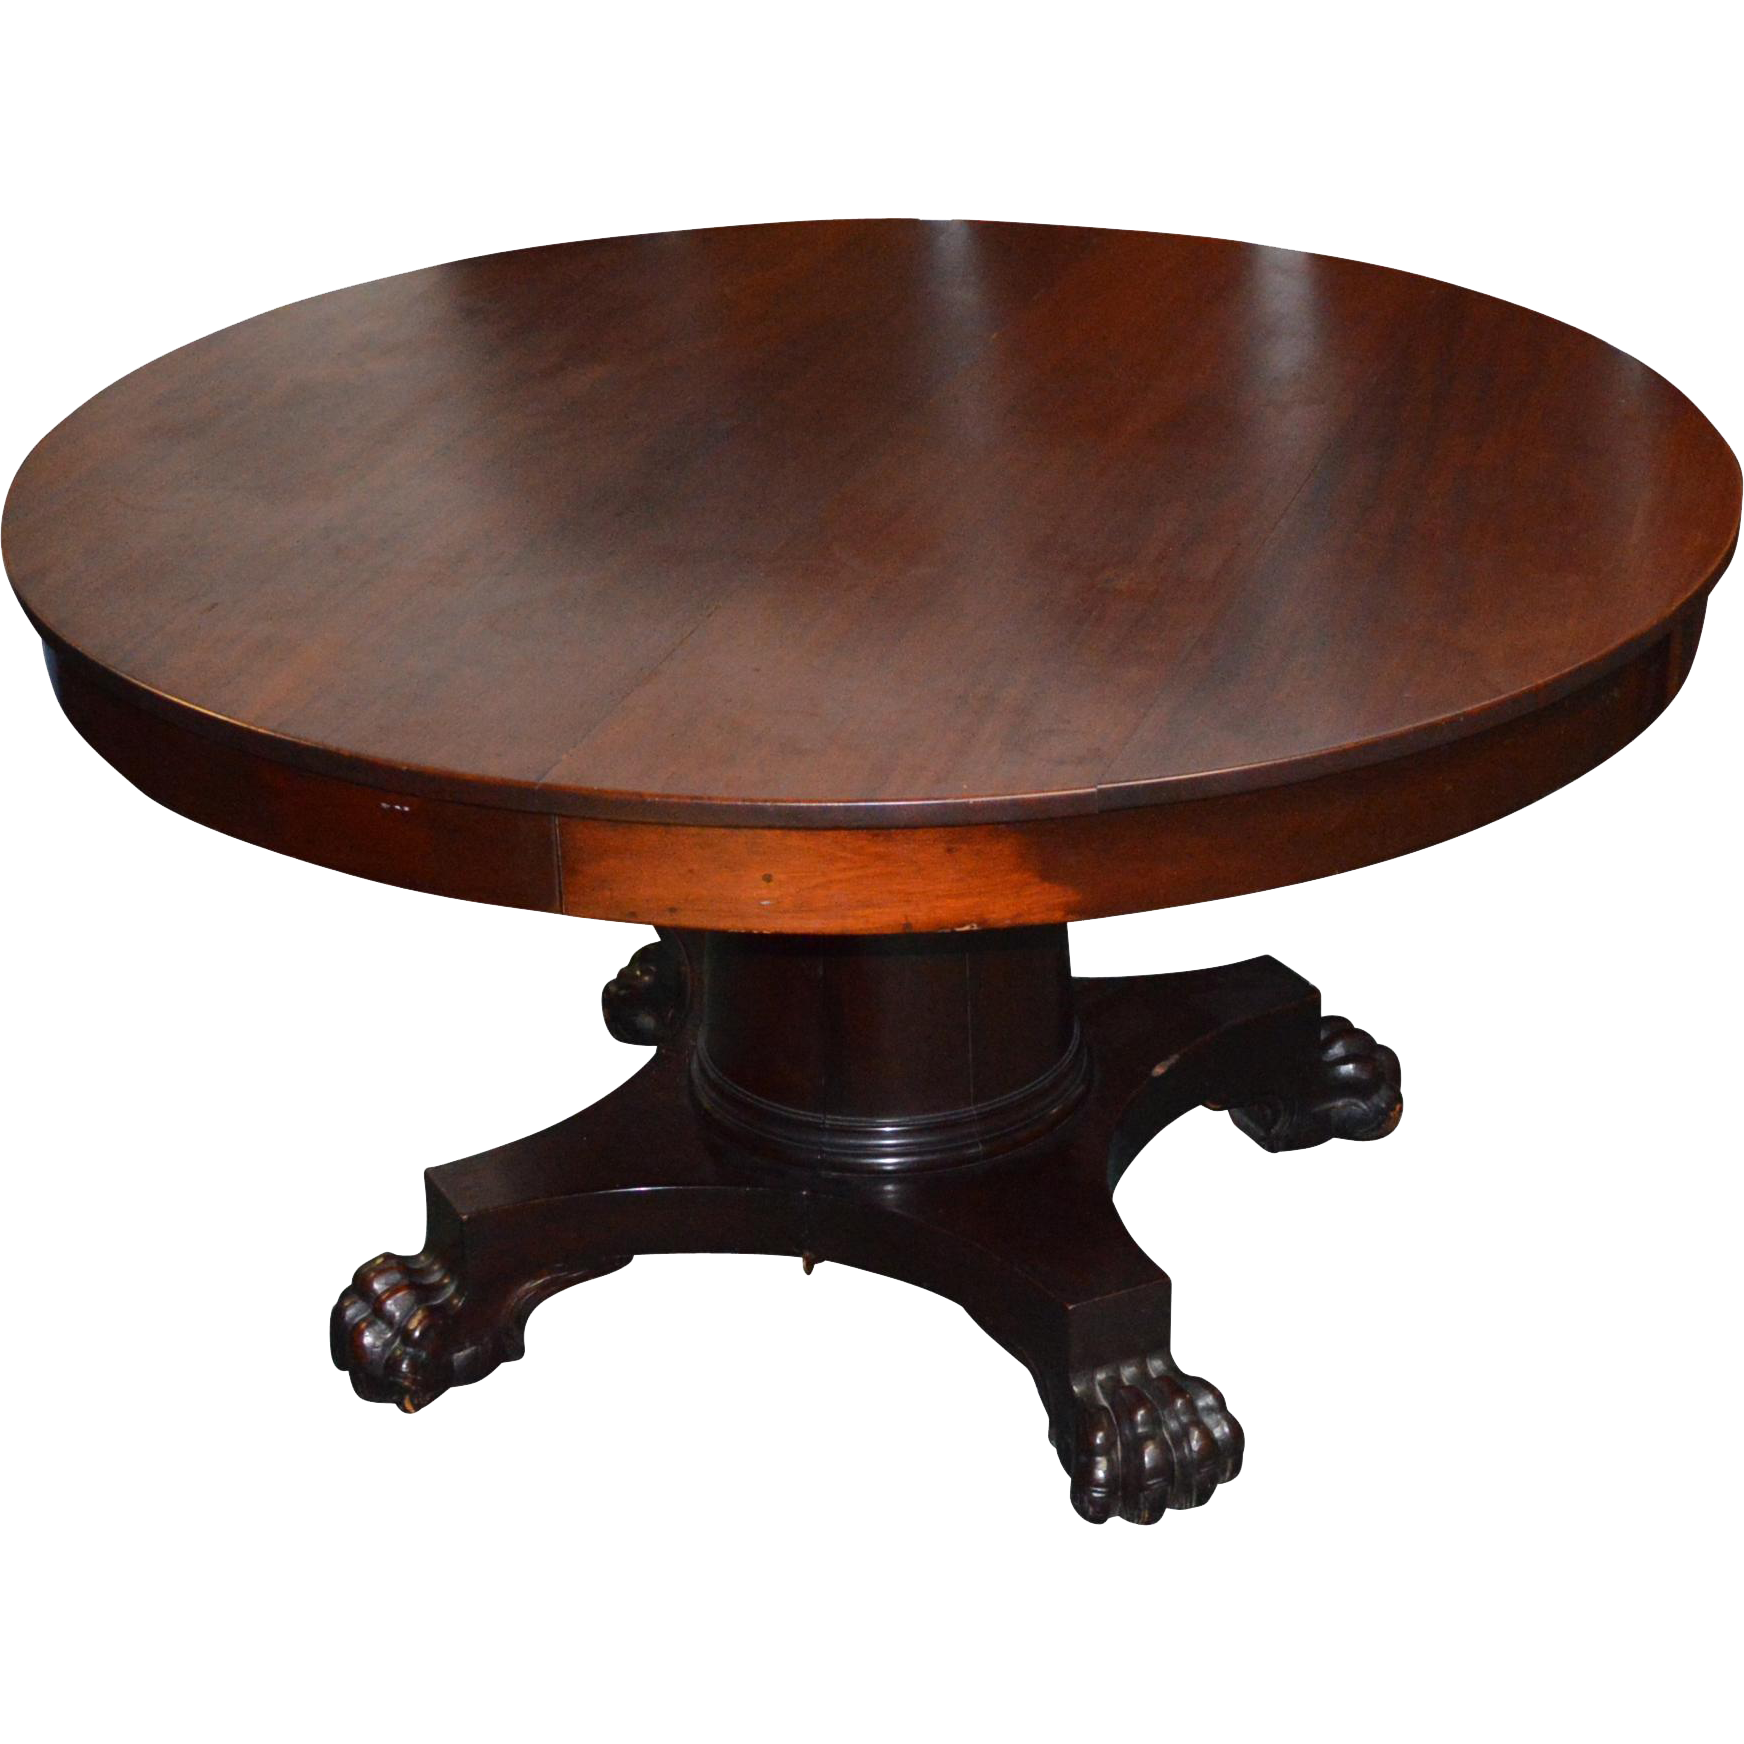 Empire Mahogany Claw Foot Dining Room Table 5 Leaves  : 182041L from www.rubylane.com size 1744 x 1744 png 1308kB